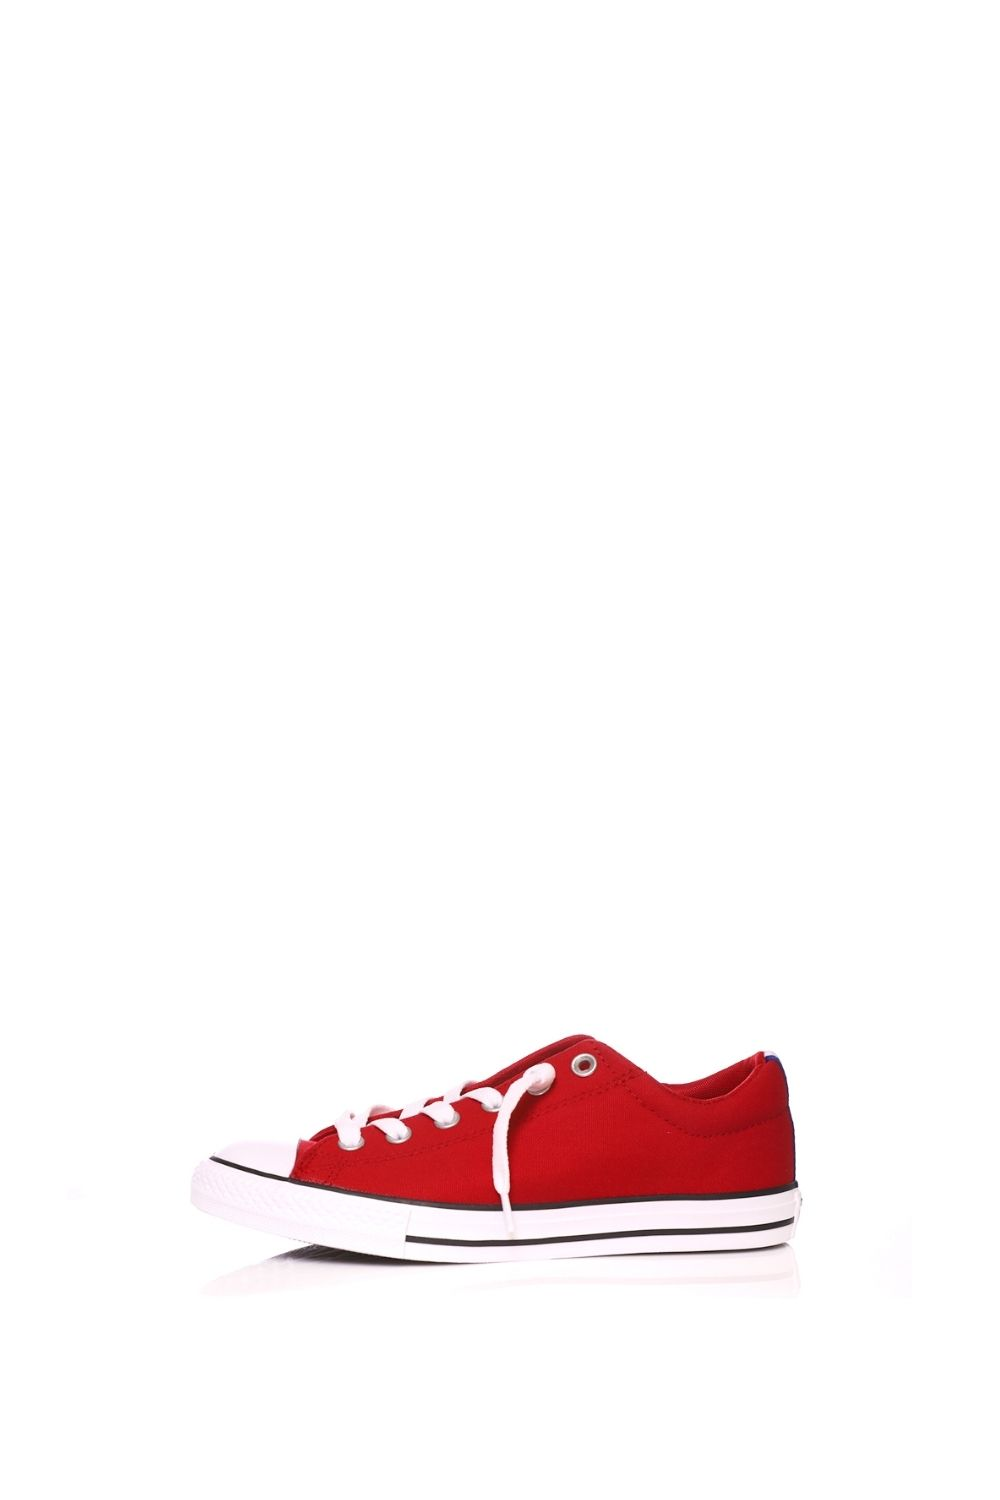 7502bdd2f74 CONVERSE - Παιδικά sneakers Converse Chuck Taylor All Star Street S ...